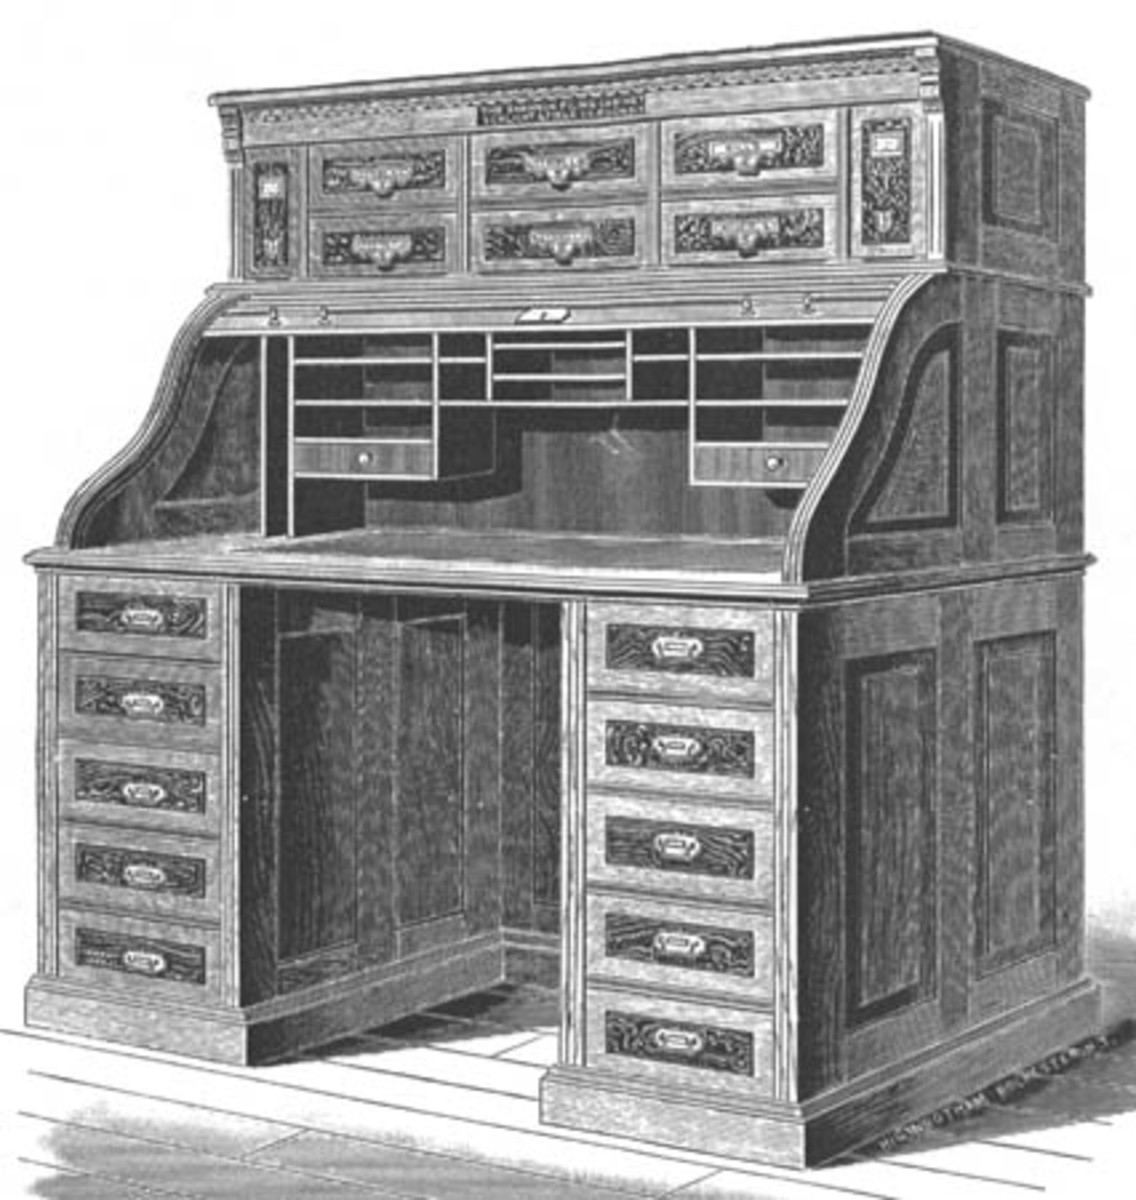 What You Need to Know About Buying a Roll Top Desk